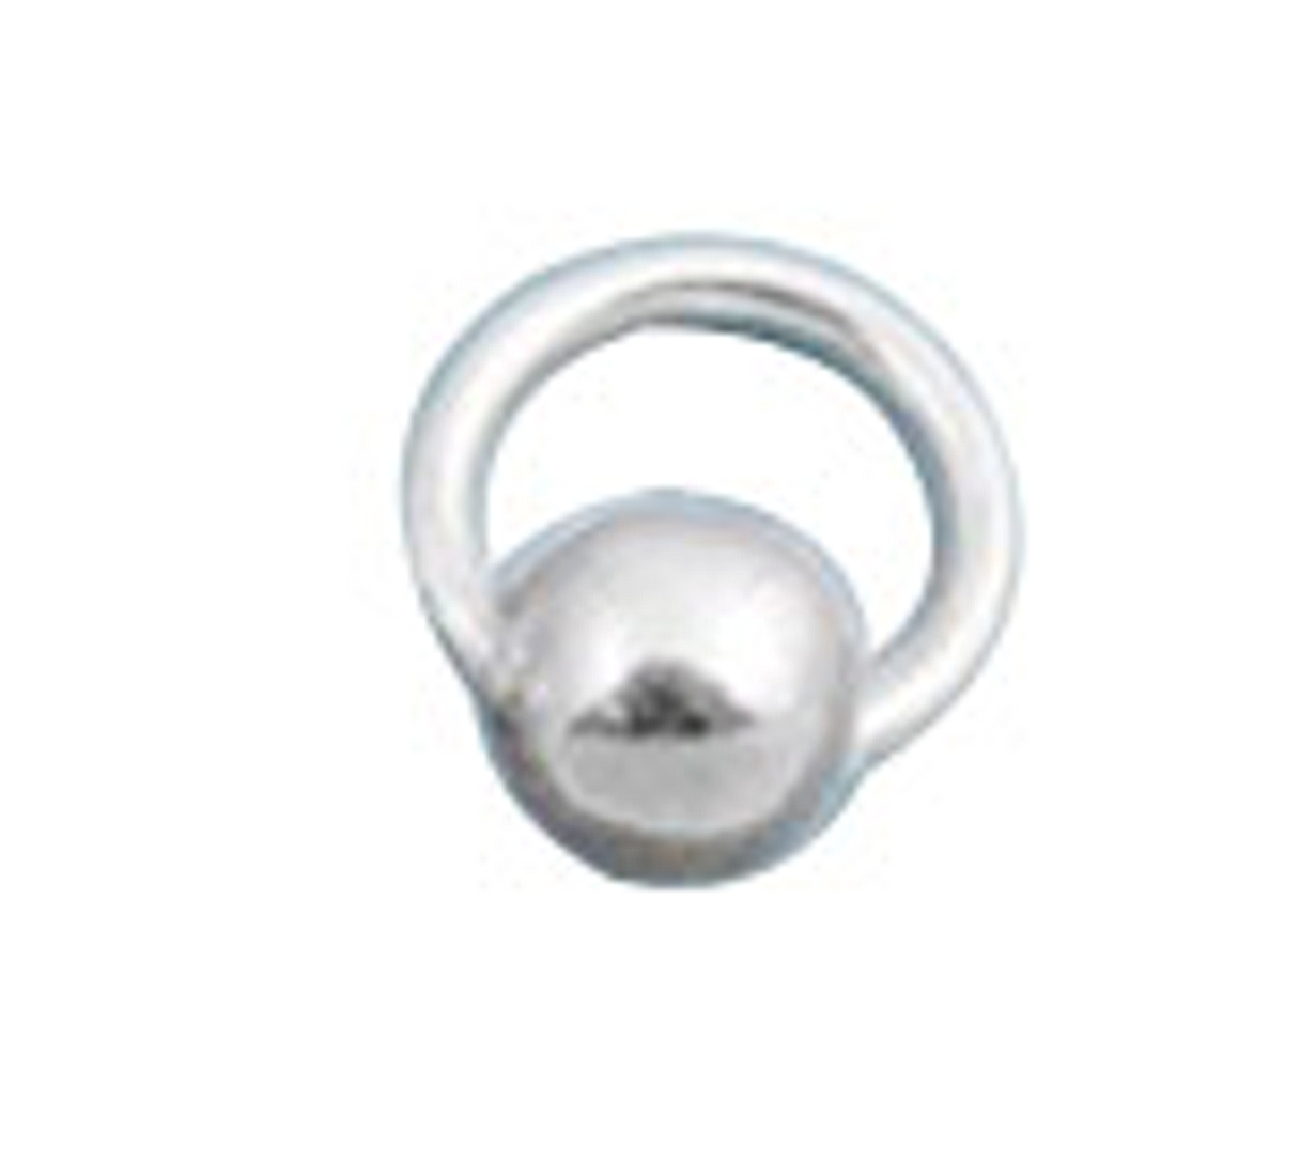 8mm Pierced Ear Ball Charm Wire Band Ring Ear Cuff